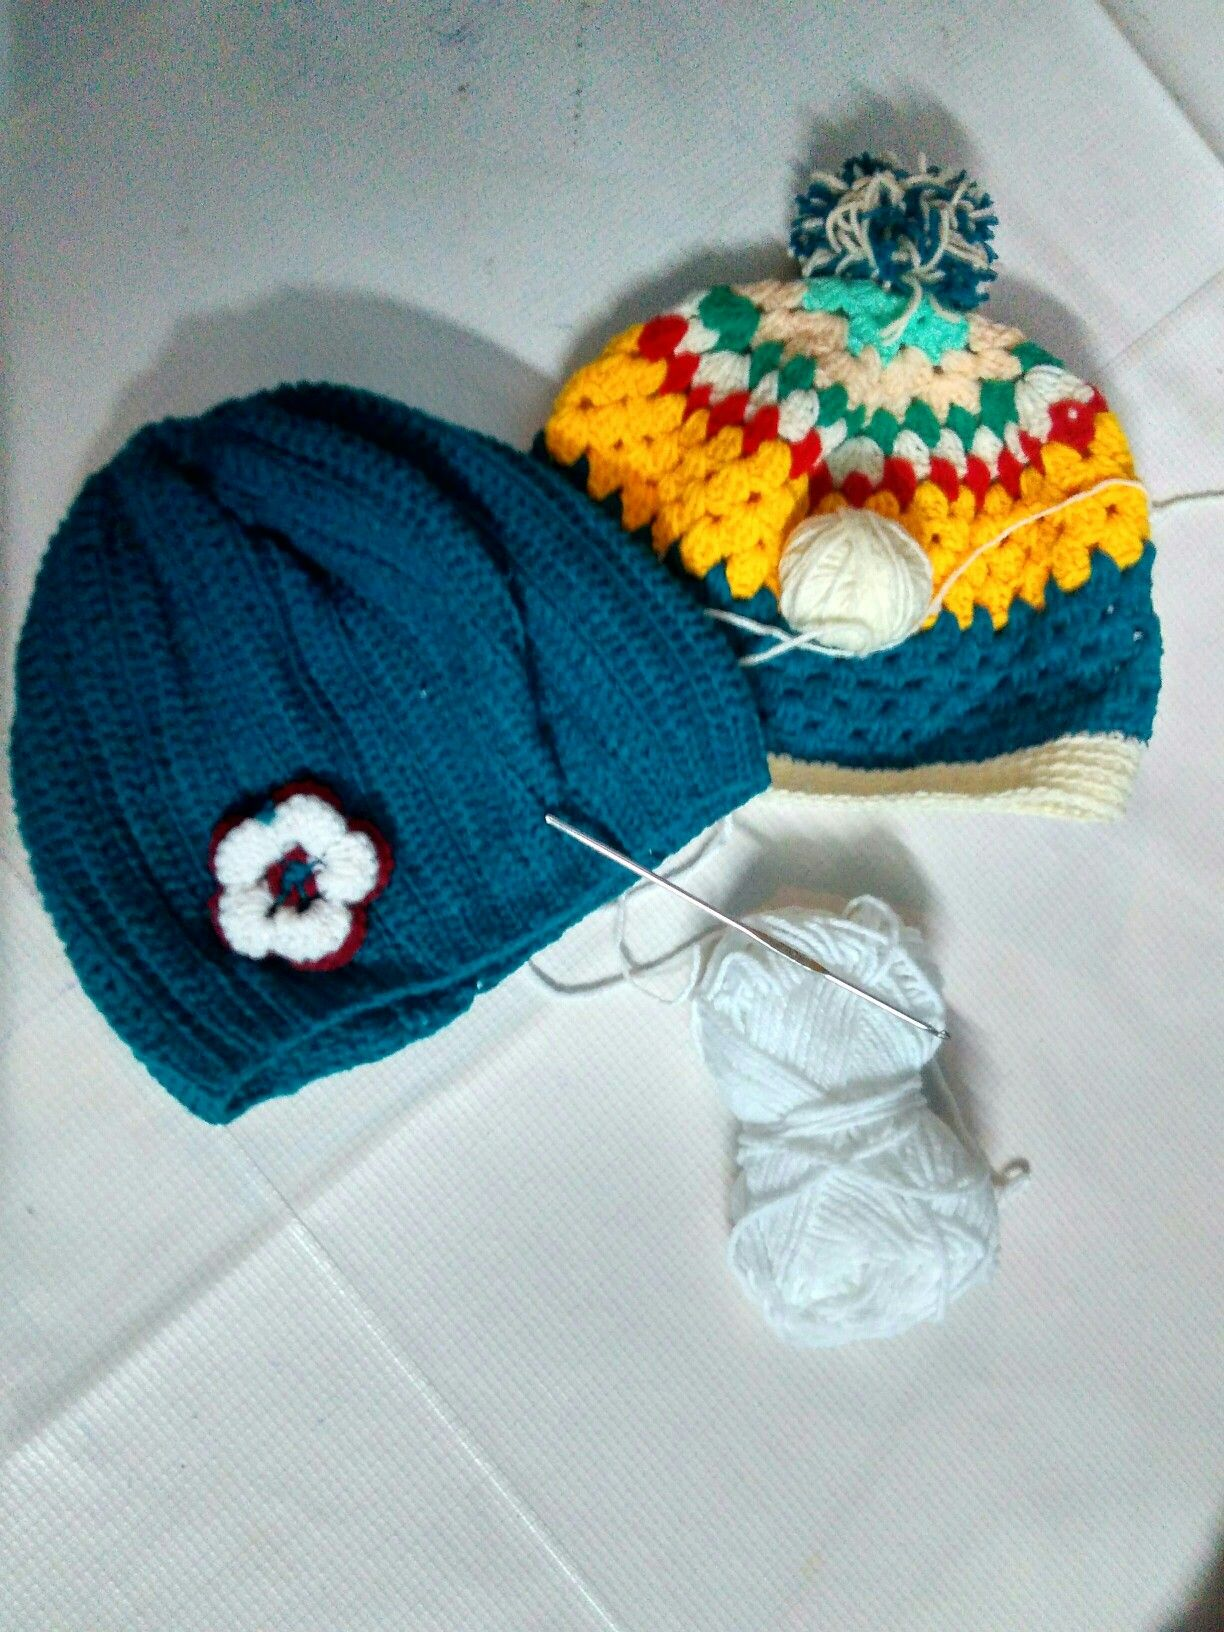 Crochet colorful hat upto 1 year baby